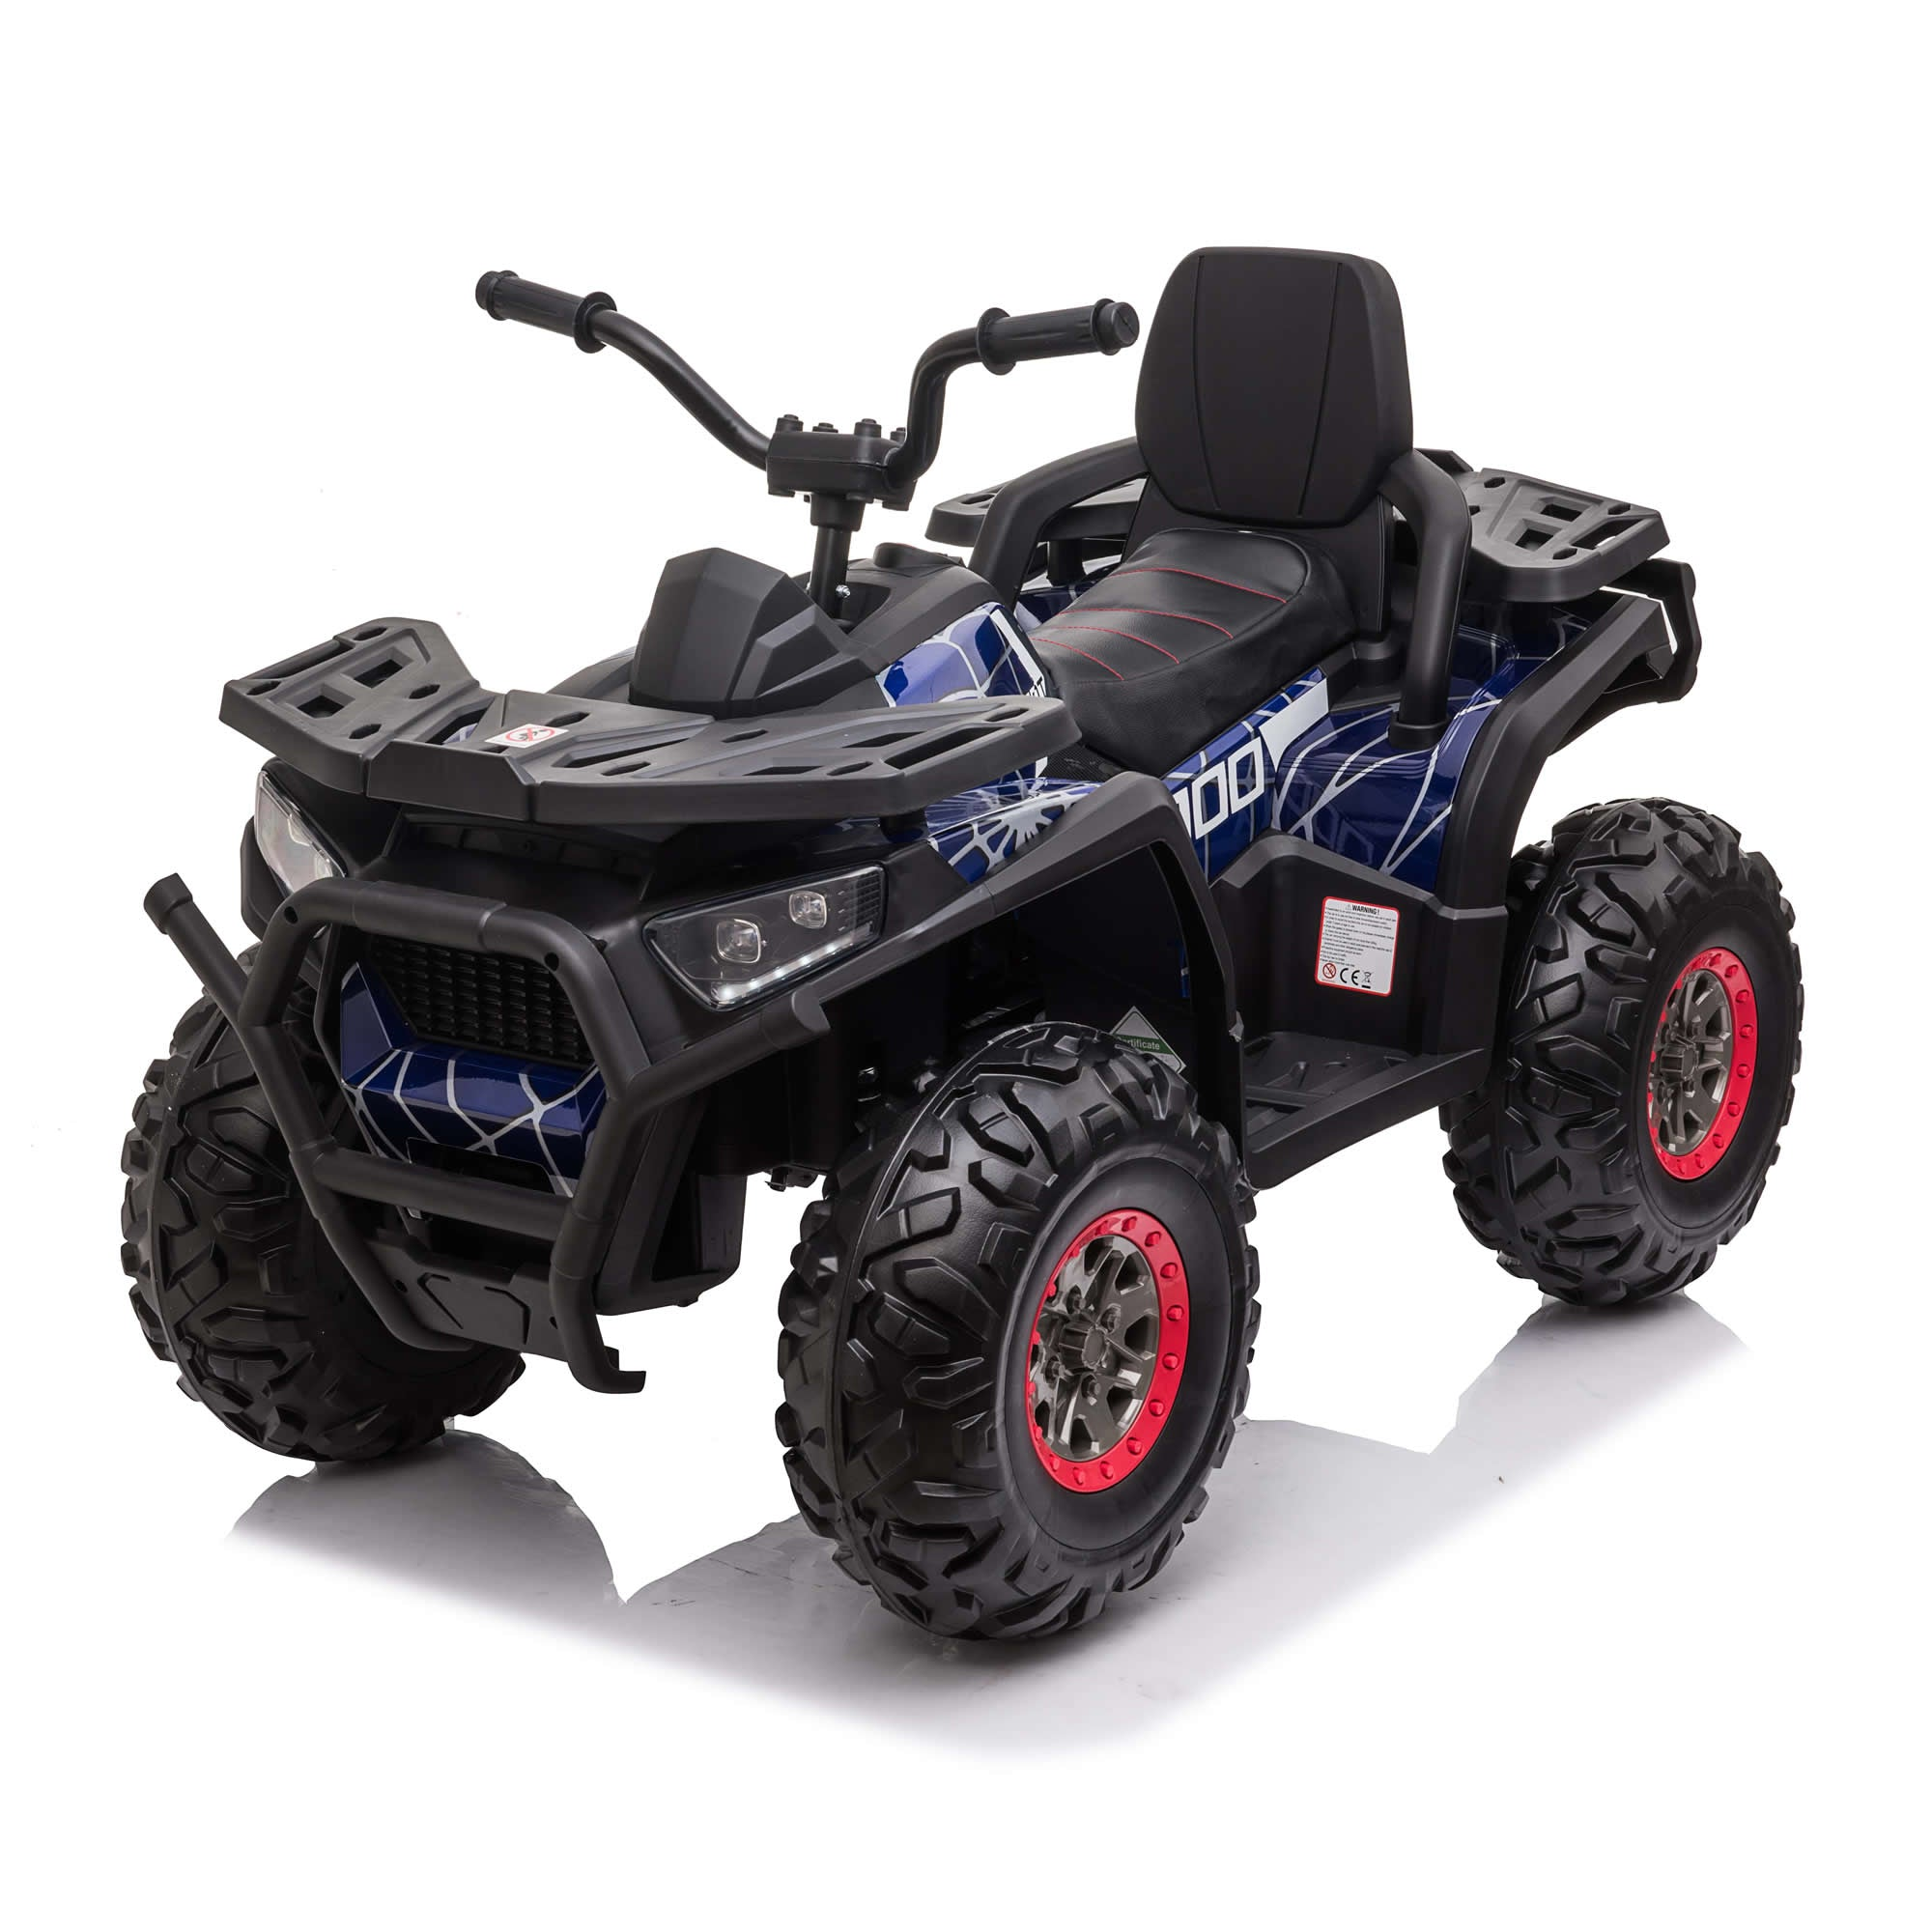 XMX607 Desert ATV 12V with 4 x Motors Electric Ride on Quad Bike - Spyder blue